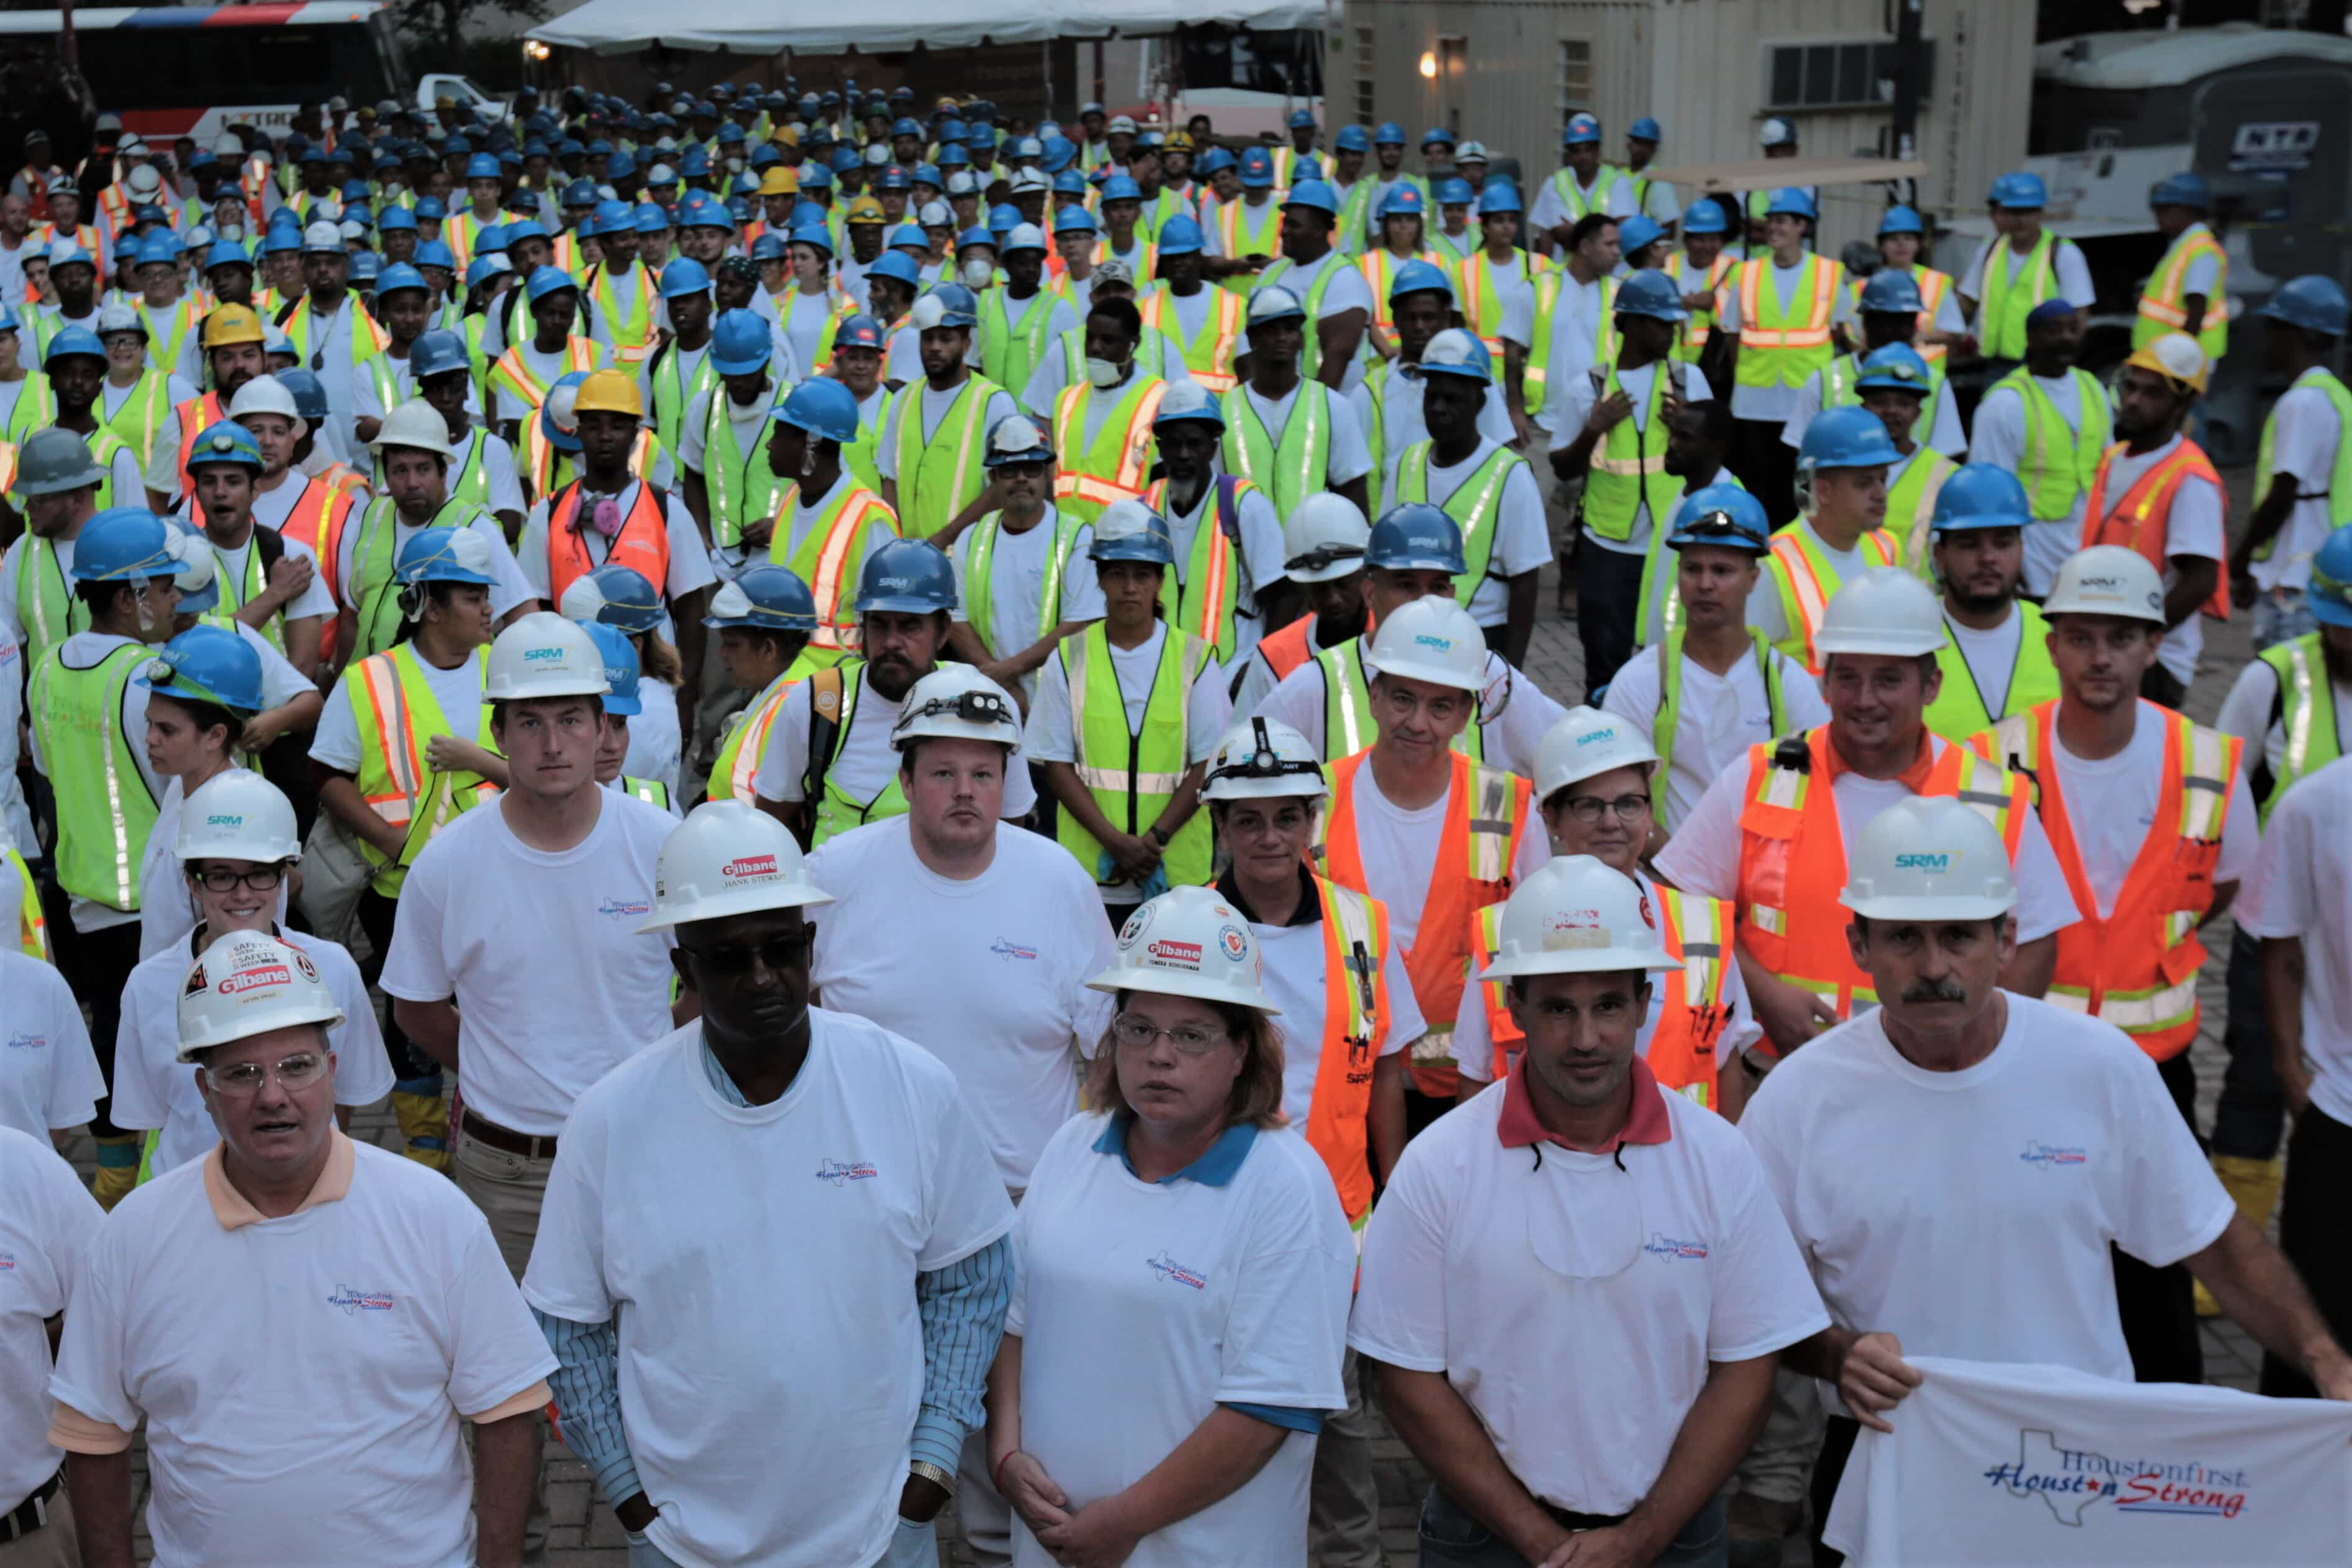 group shot of people wearing hard hats